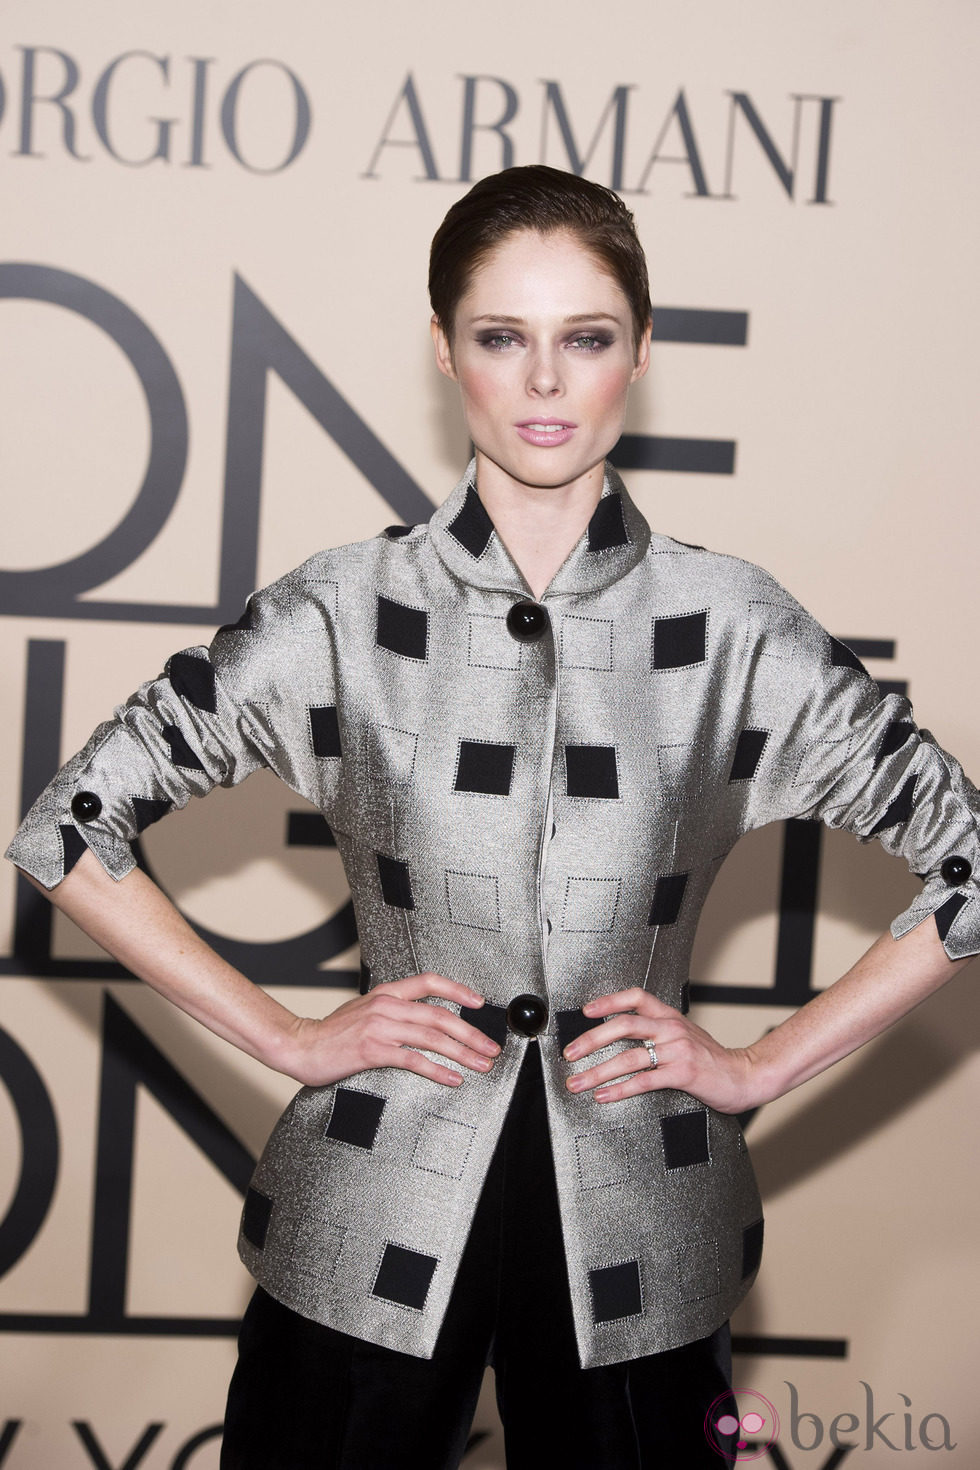 Coco Rocha en la fiesta de Giorgio Armani 'One NIght Only' en Nueva York